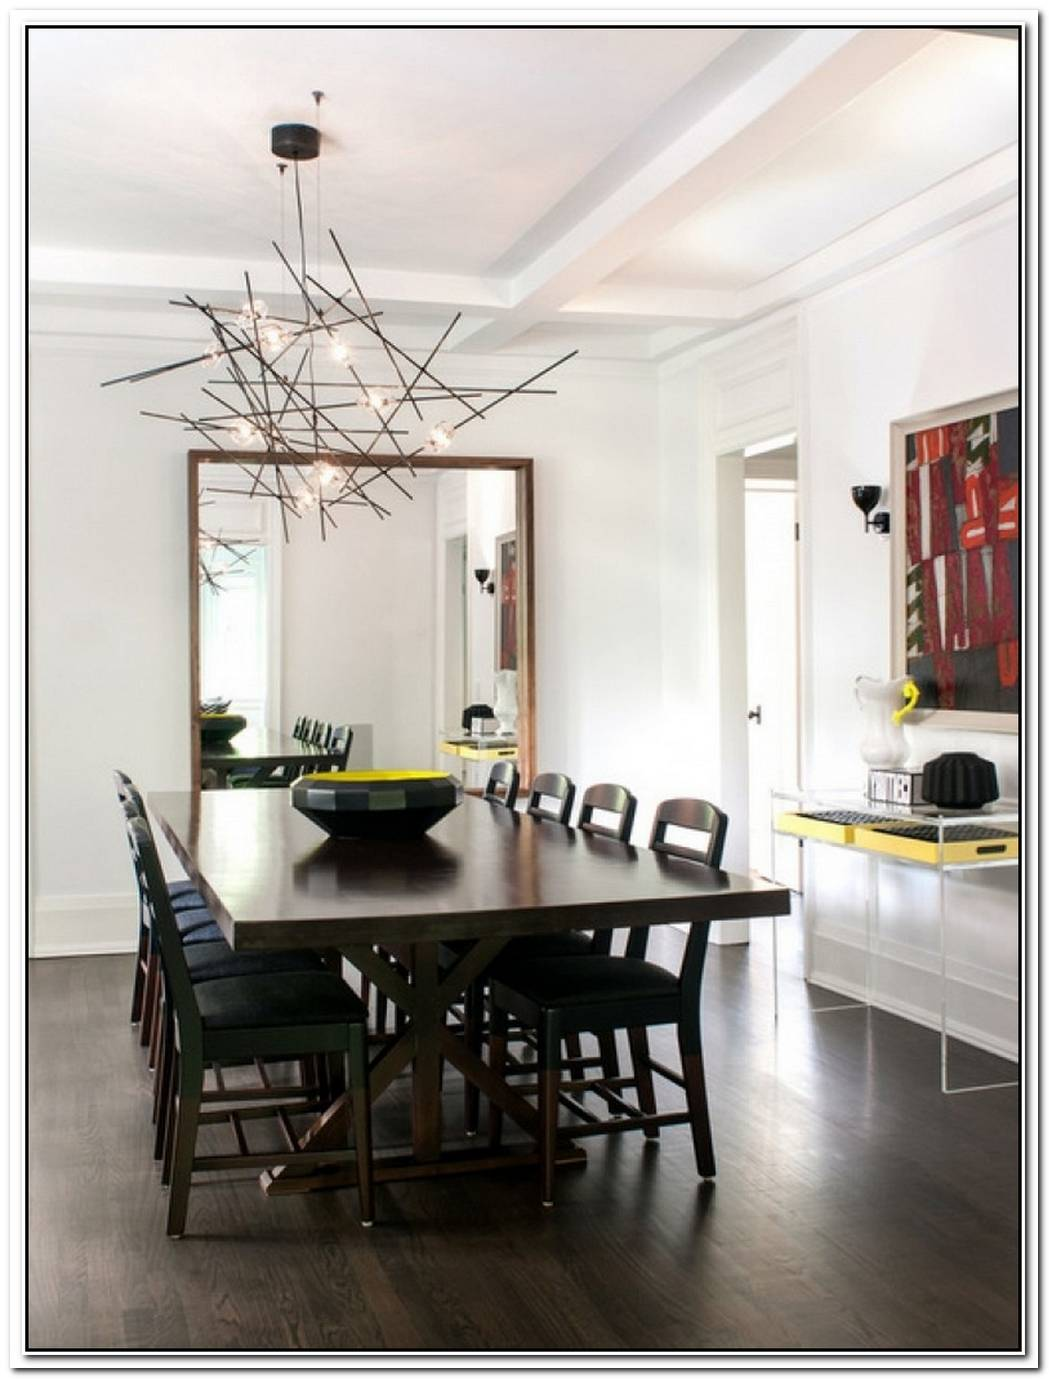 Modern Chadeliers For The Dining Room